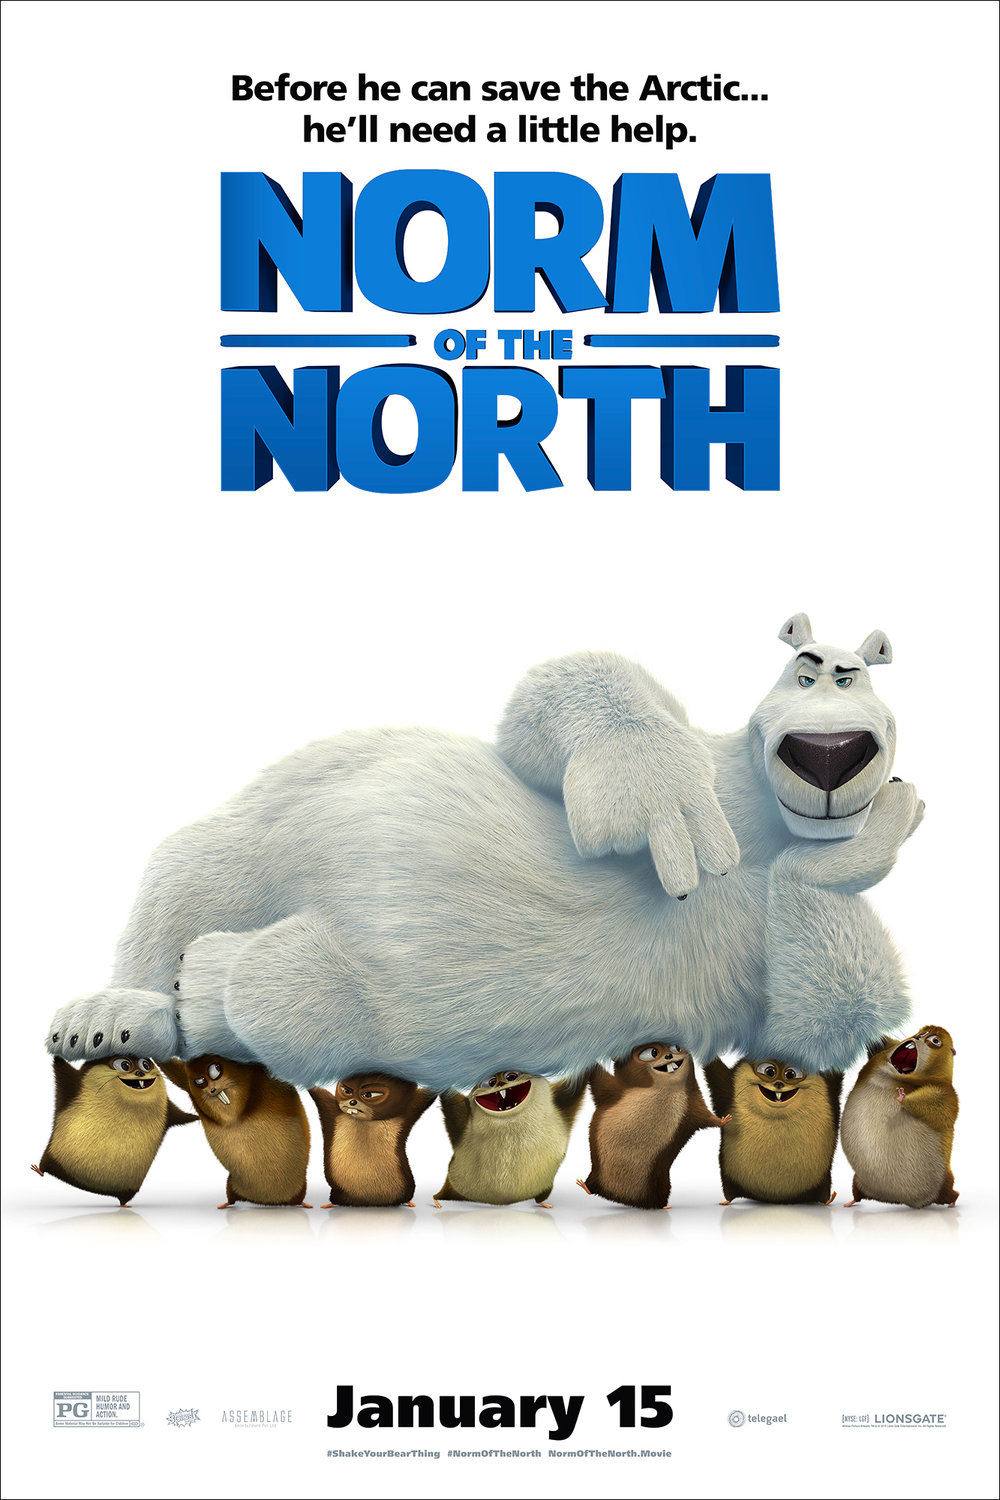 NormOfTheNorth_WildPost_48x72_Lifting_100dpi copy.jpg